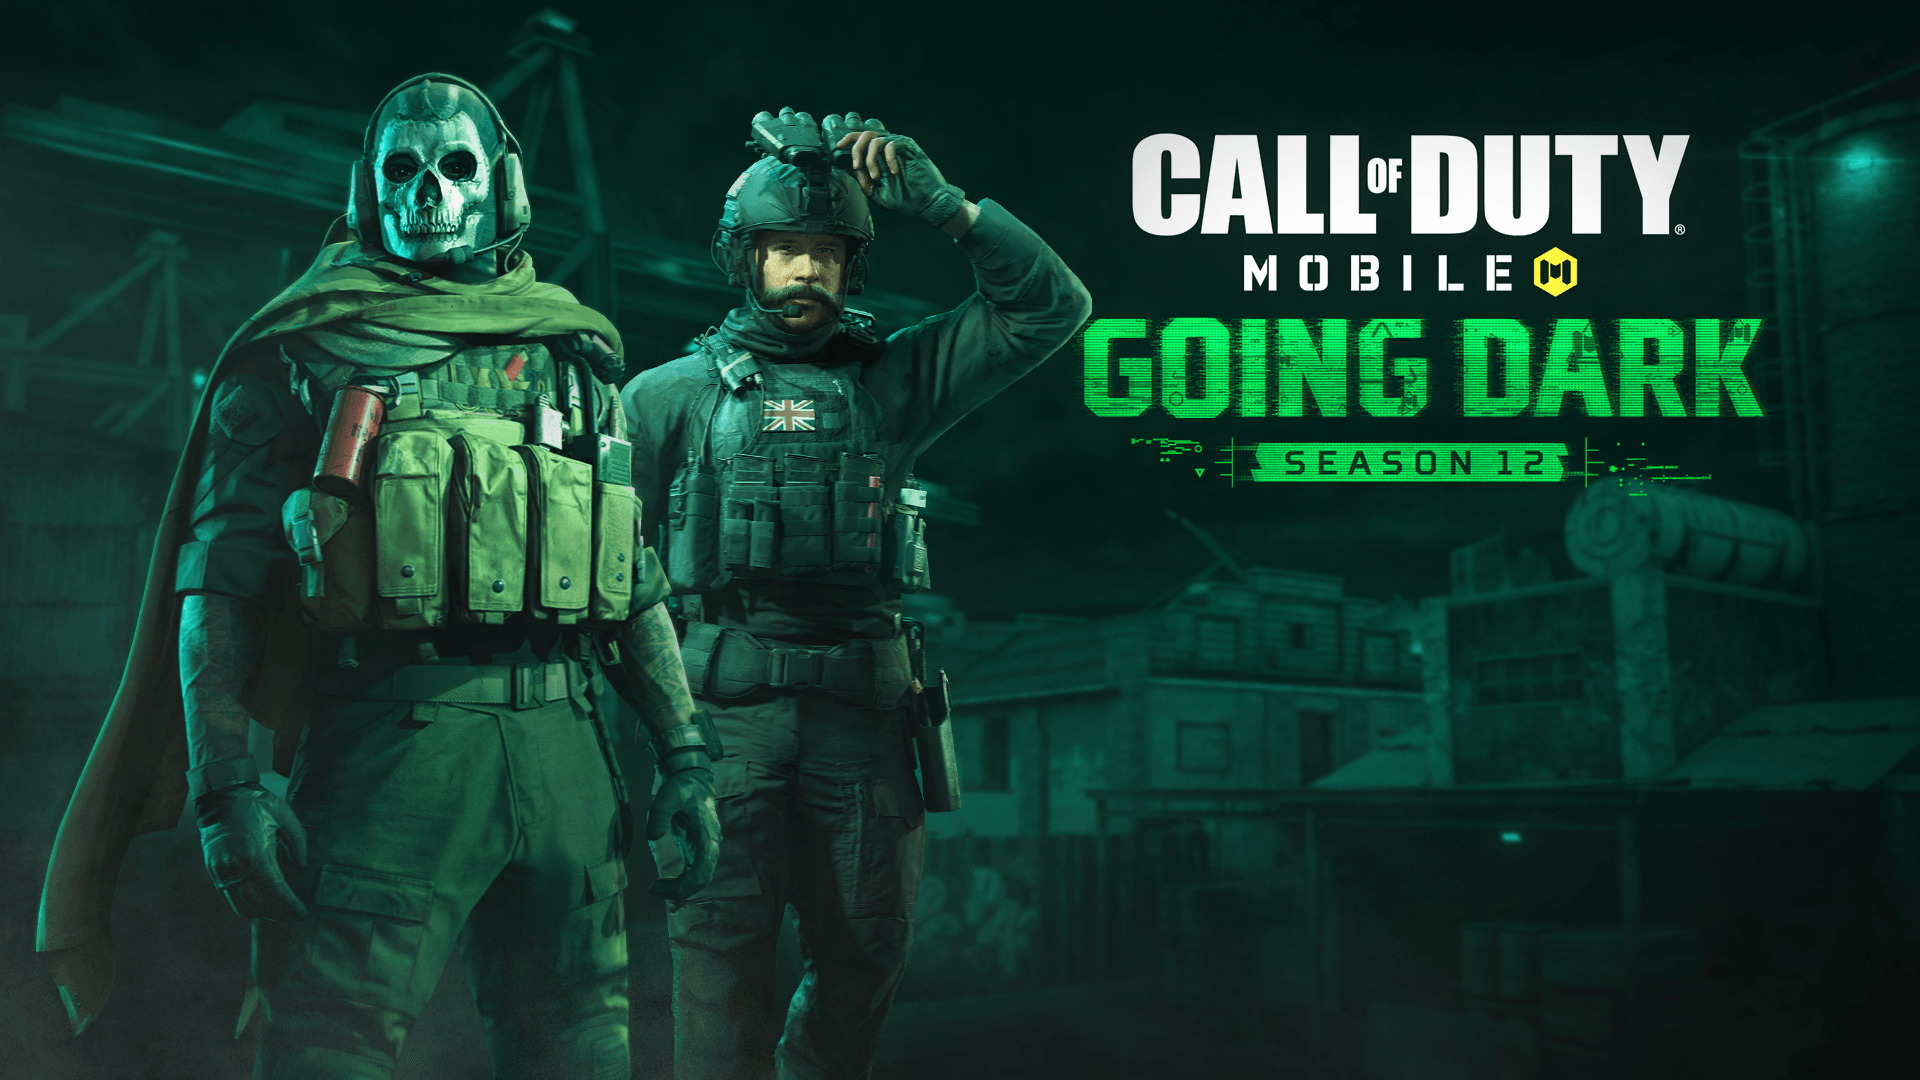 Call of Duty: Mobile Stagione 12: Going Dark